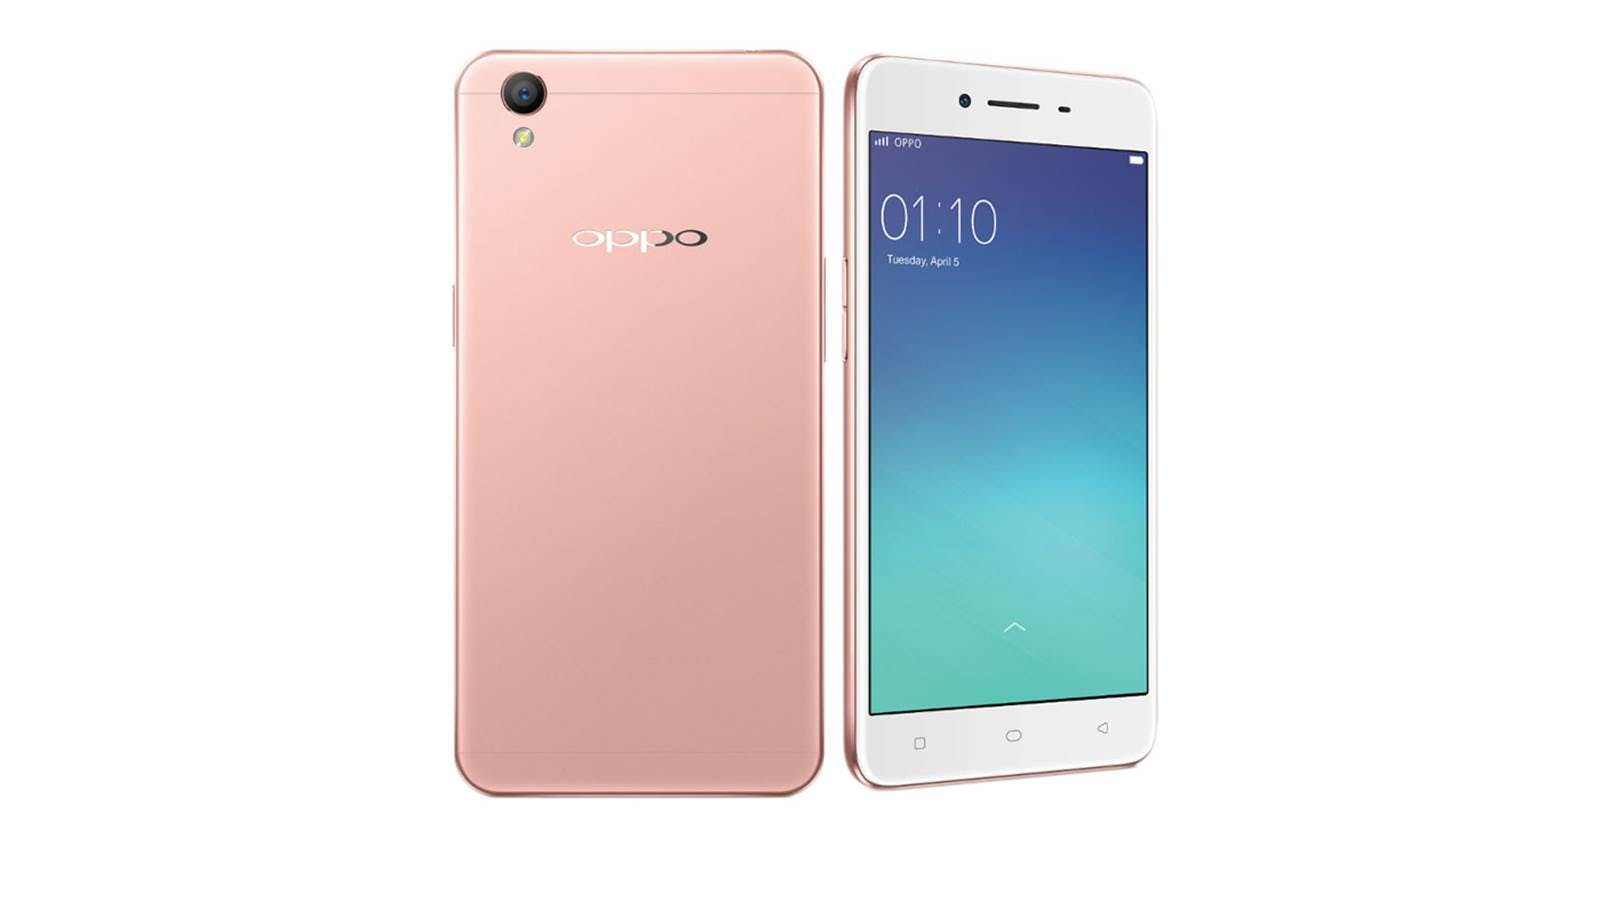 Hd wallpaper oppo a37 - Oppo A37 Smartphones Rose Gold